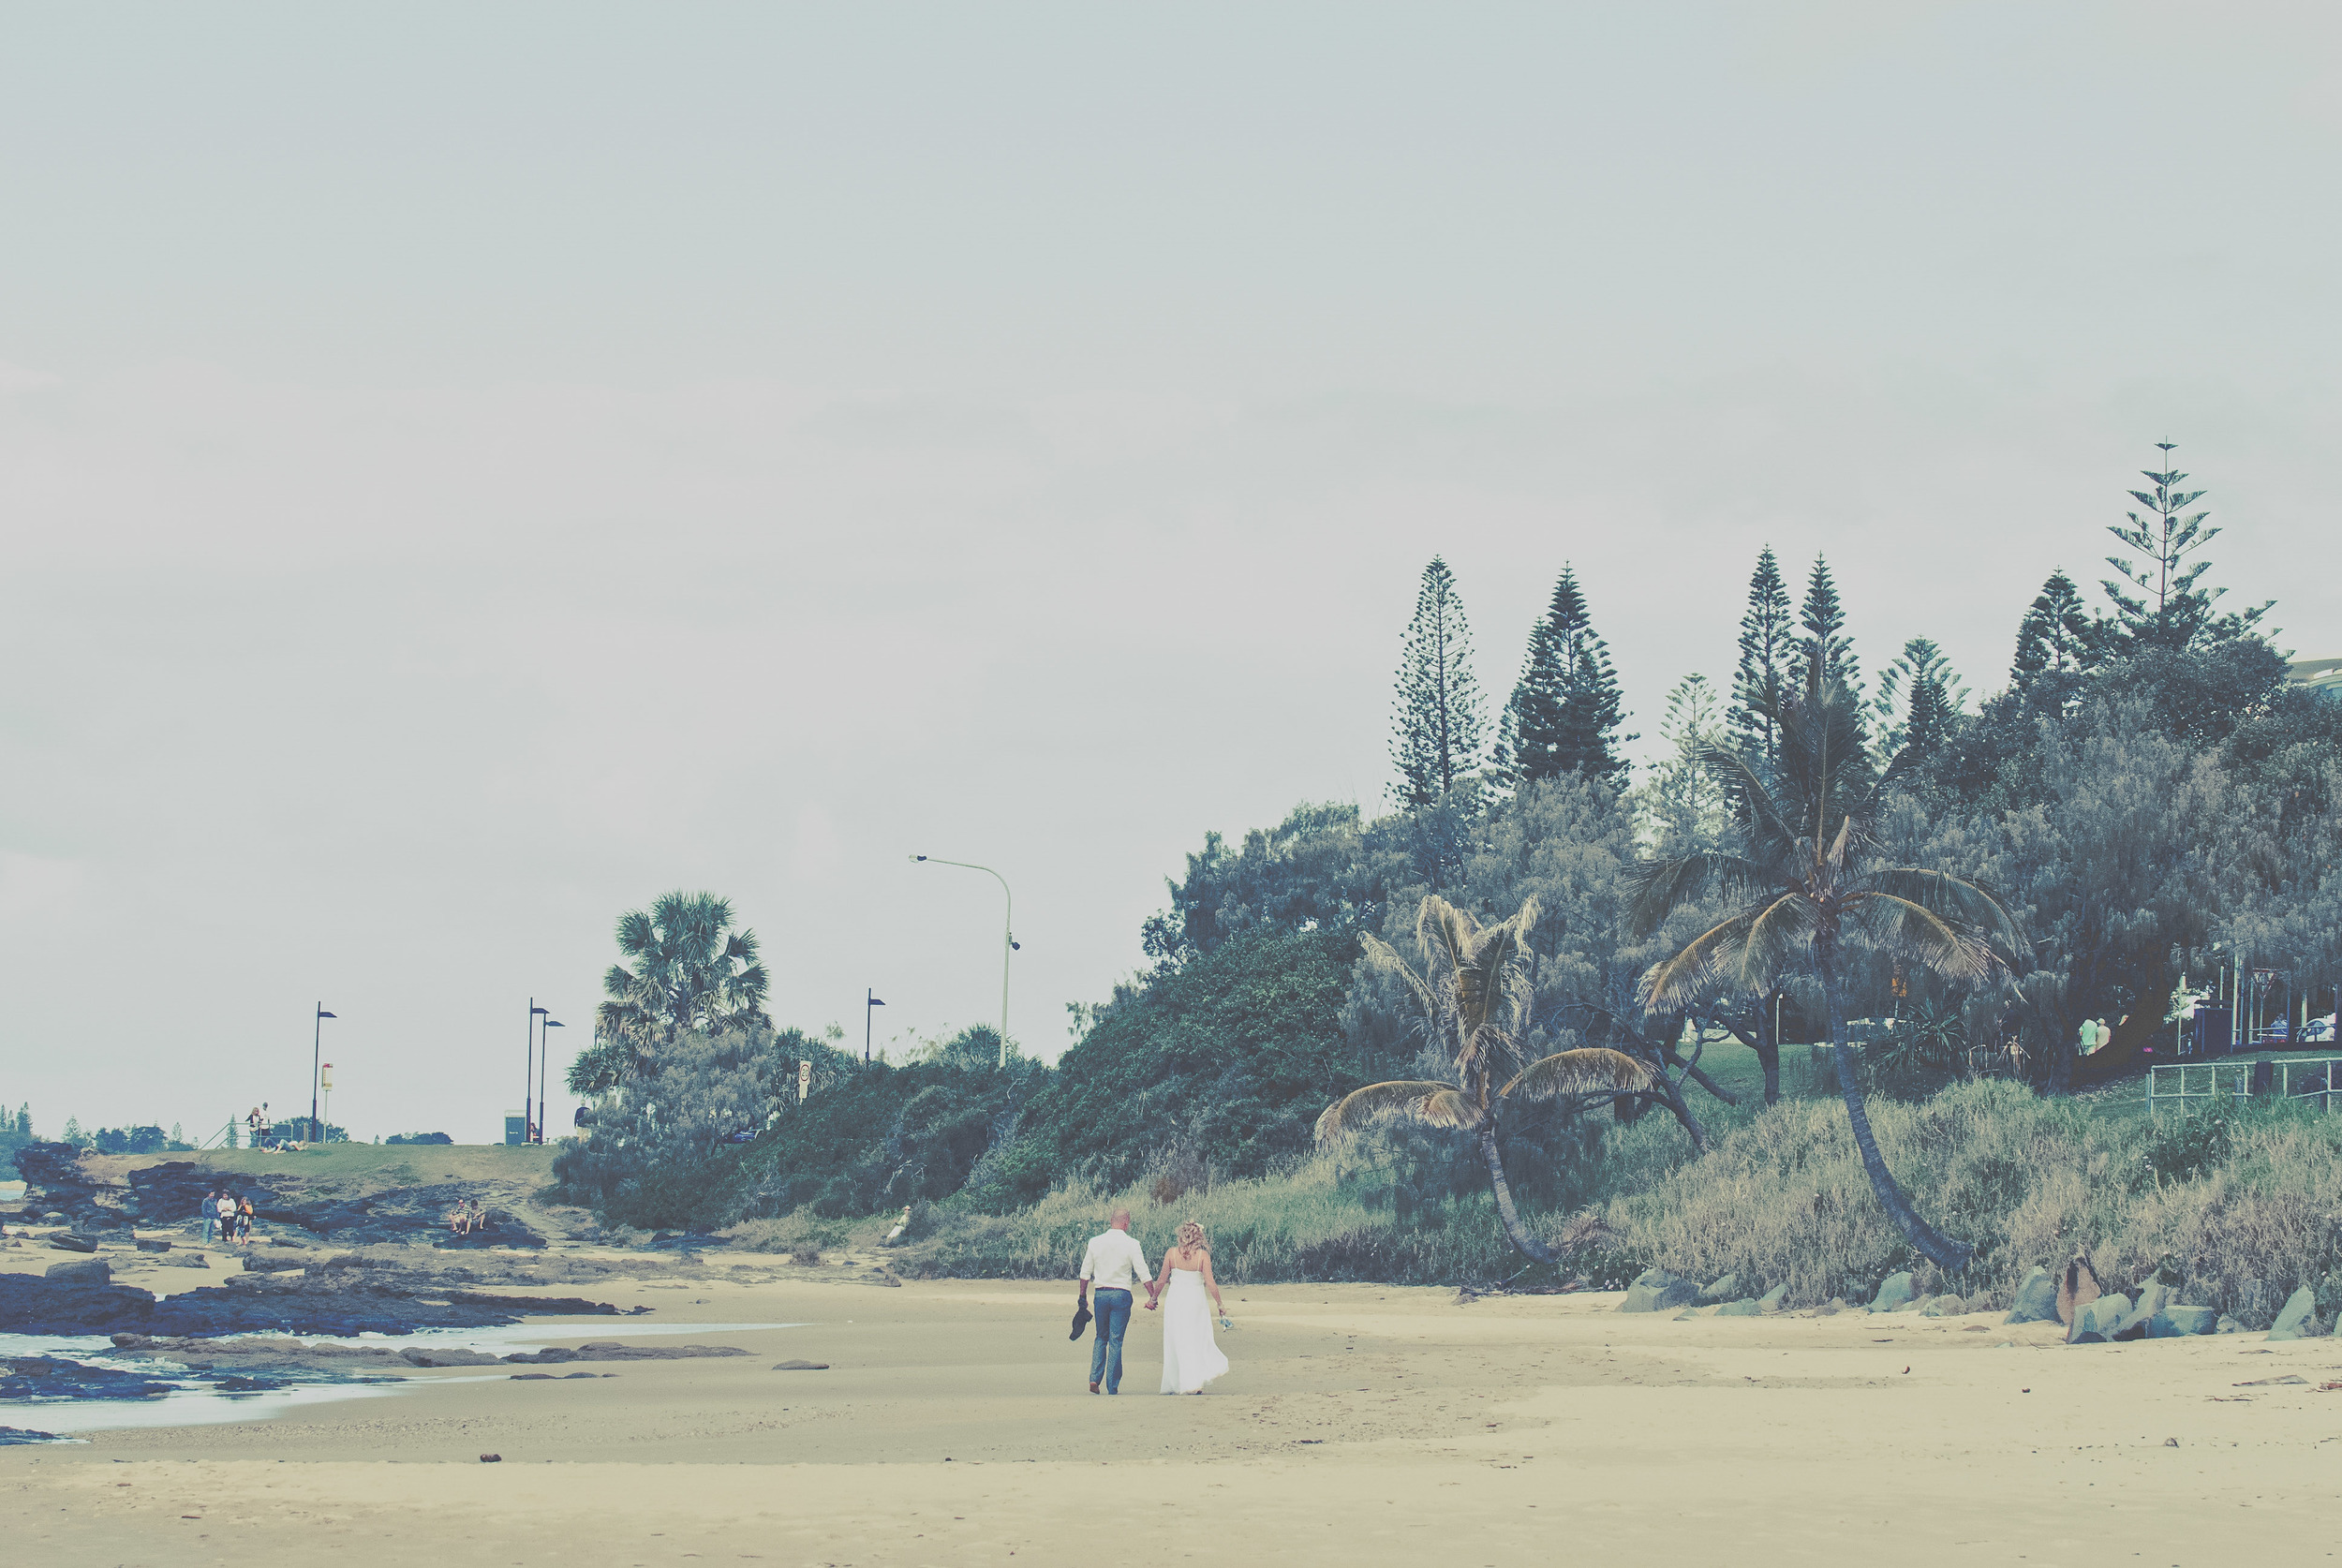 Seeweddings-44.jpg